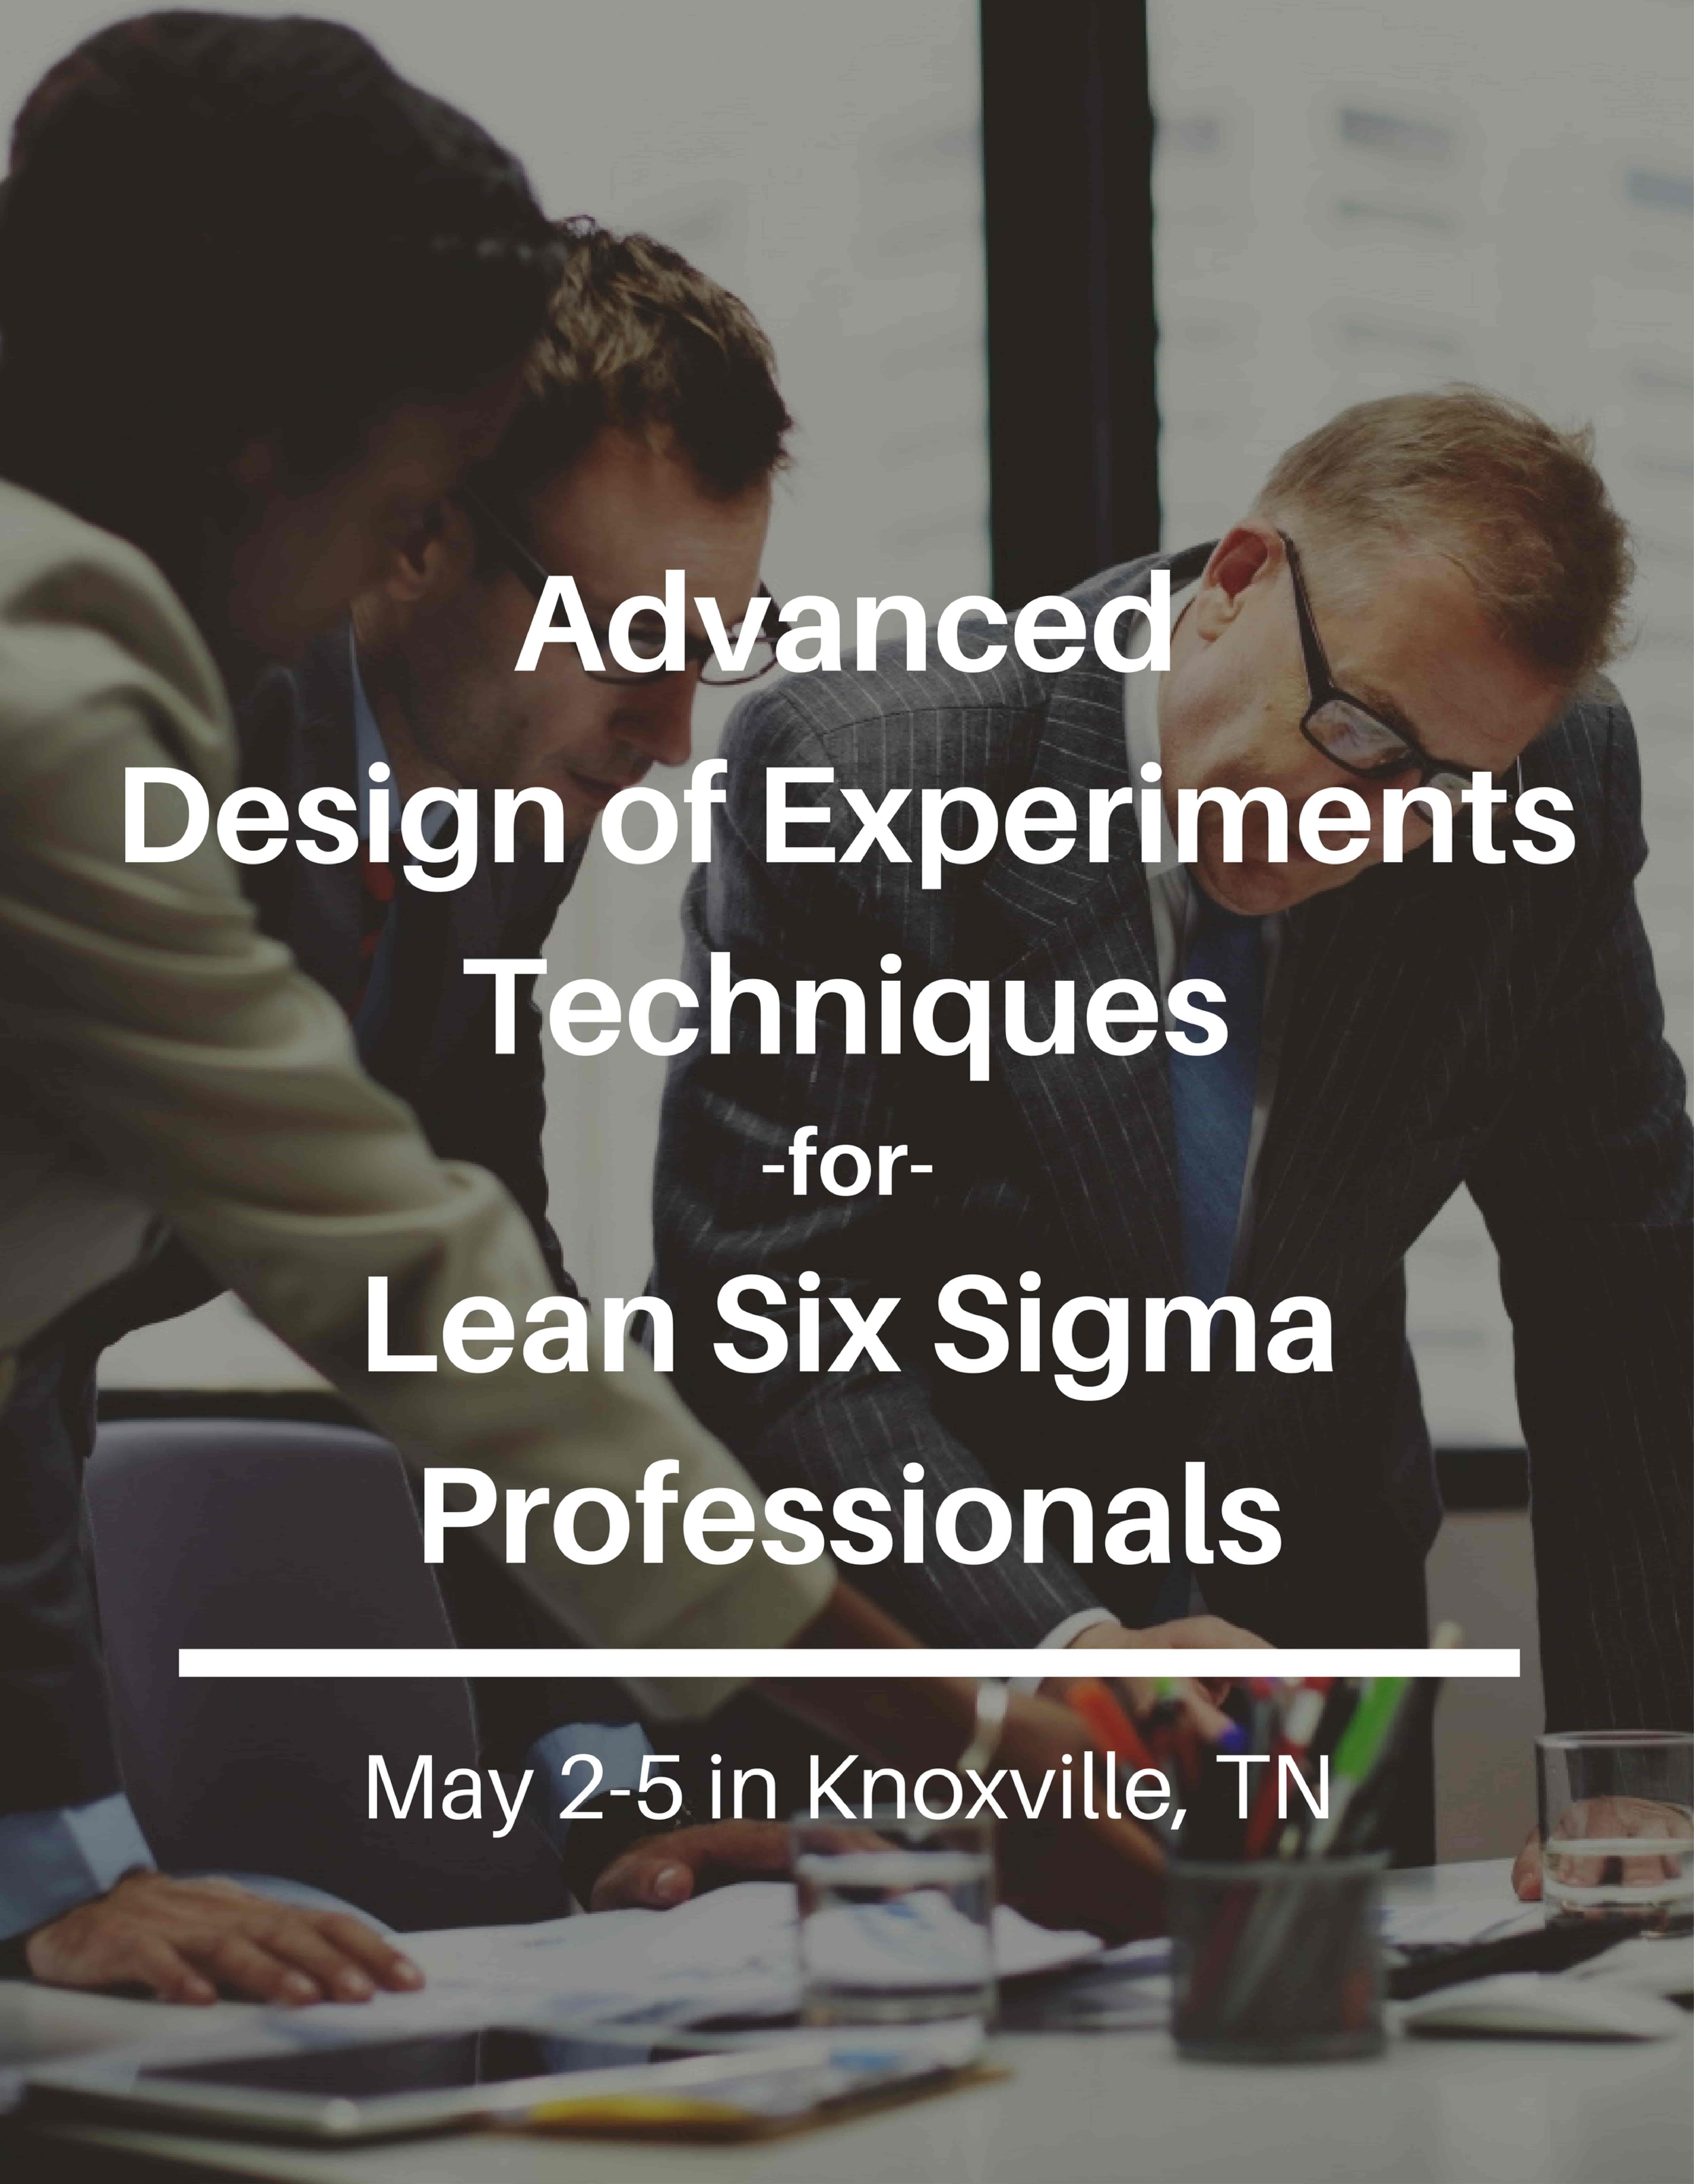 Advanced DOE for Lean Six Sigma Professionals